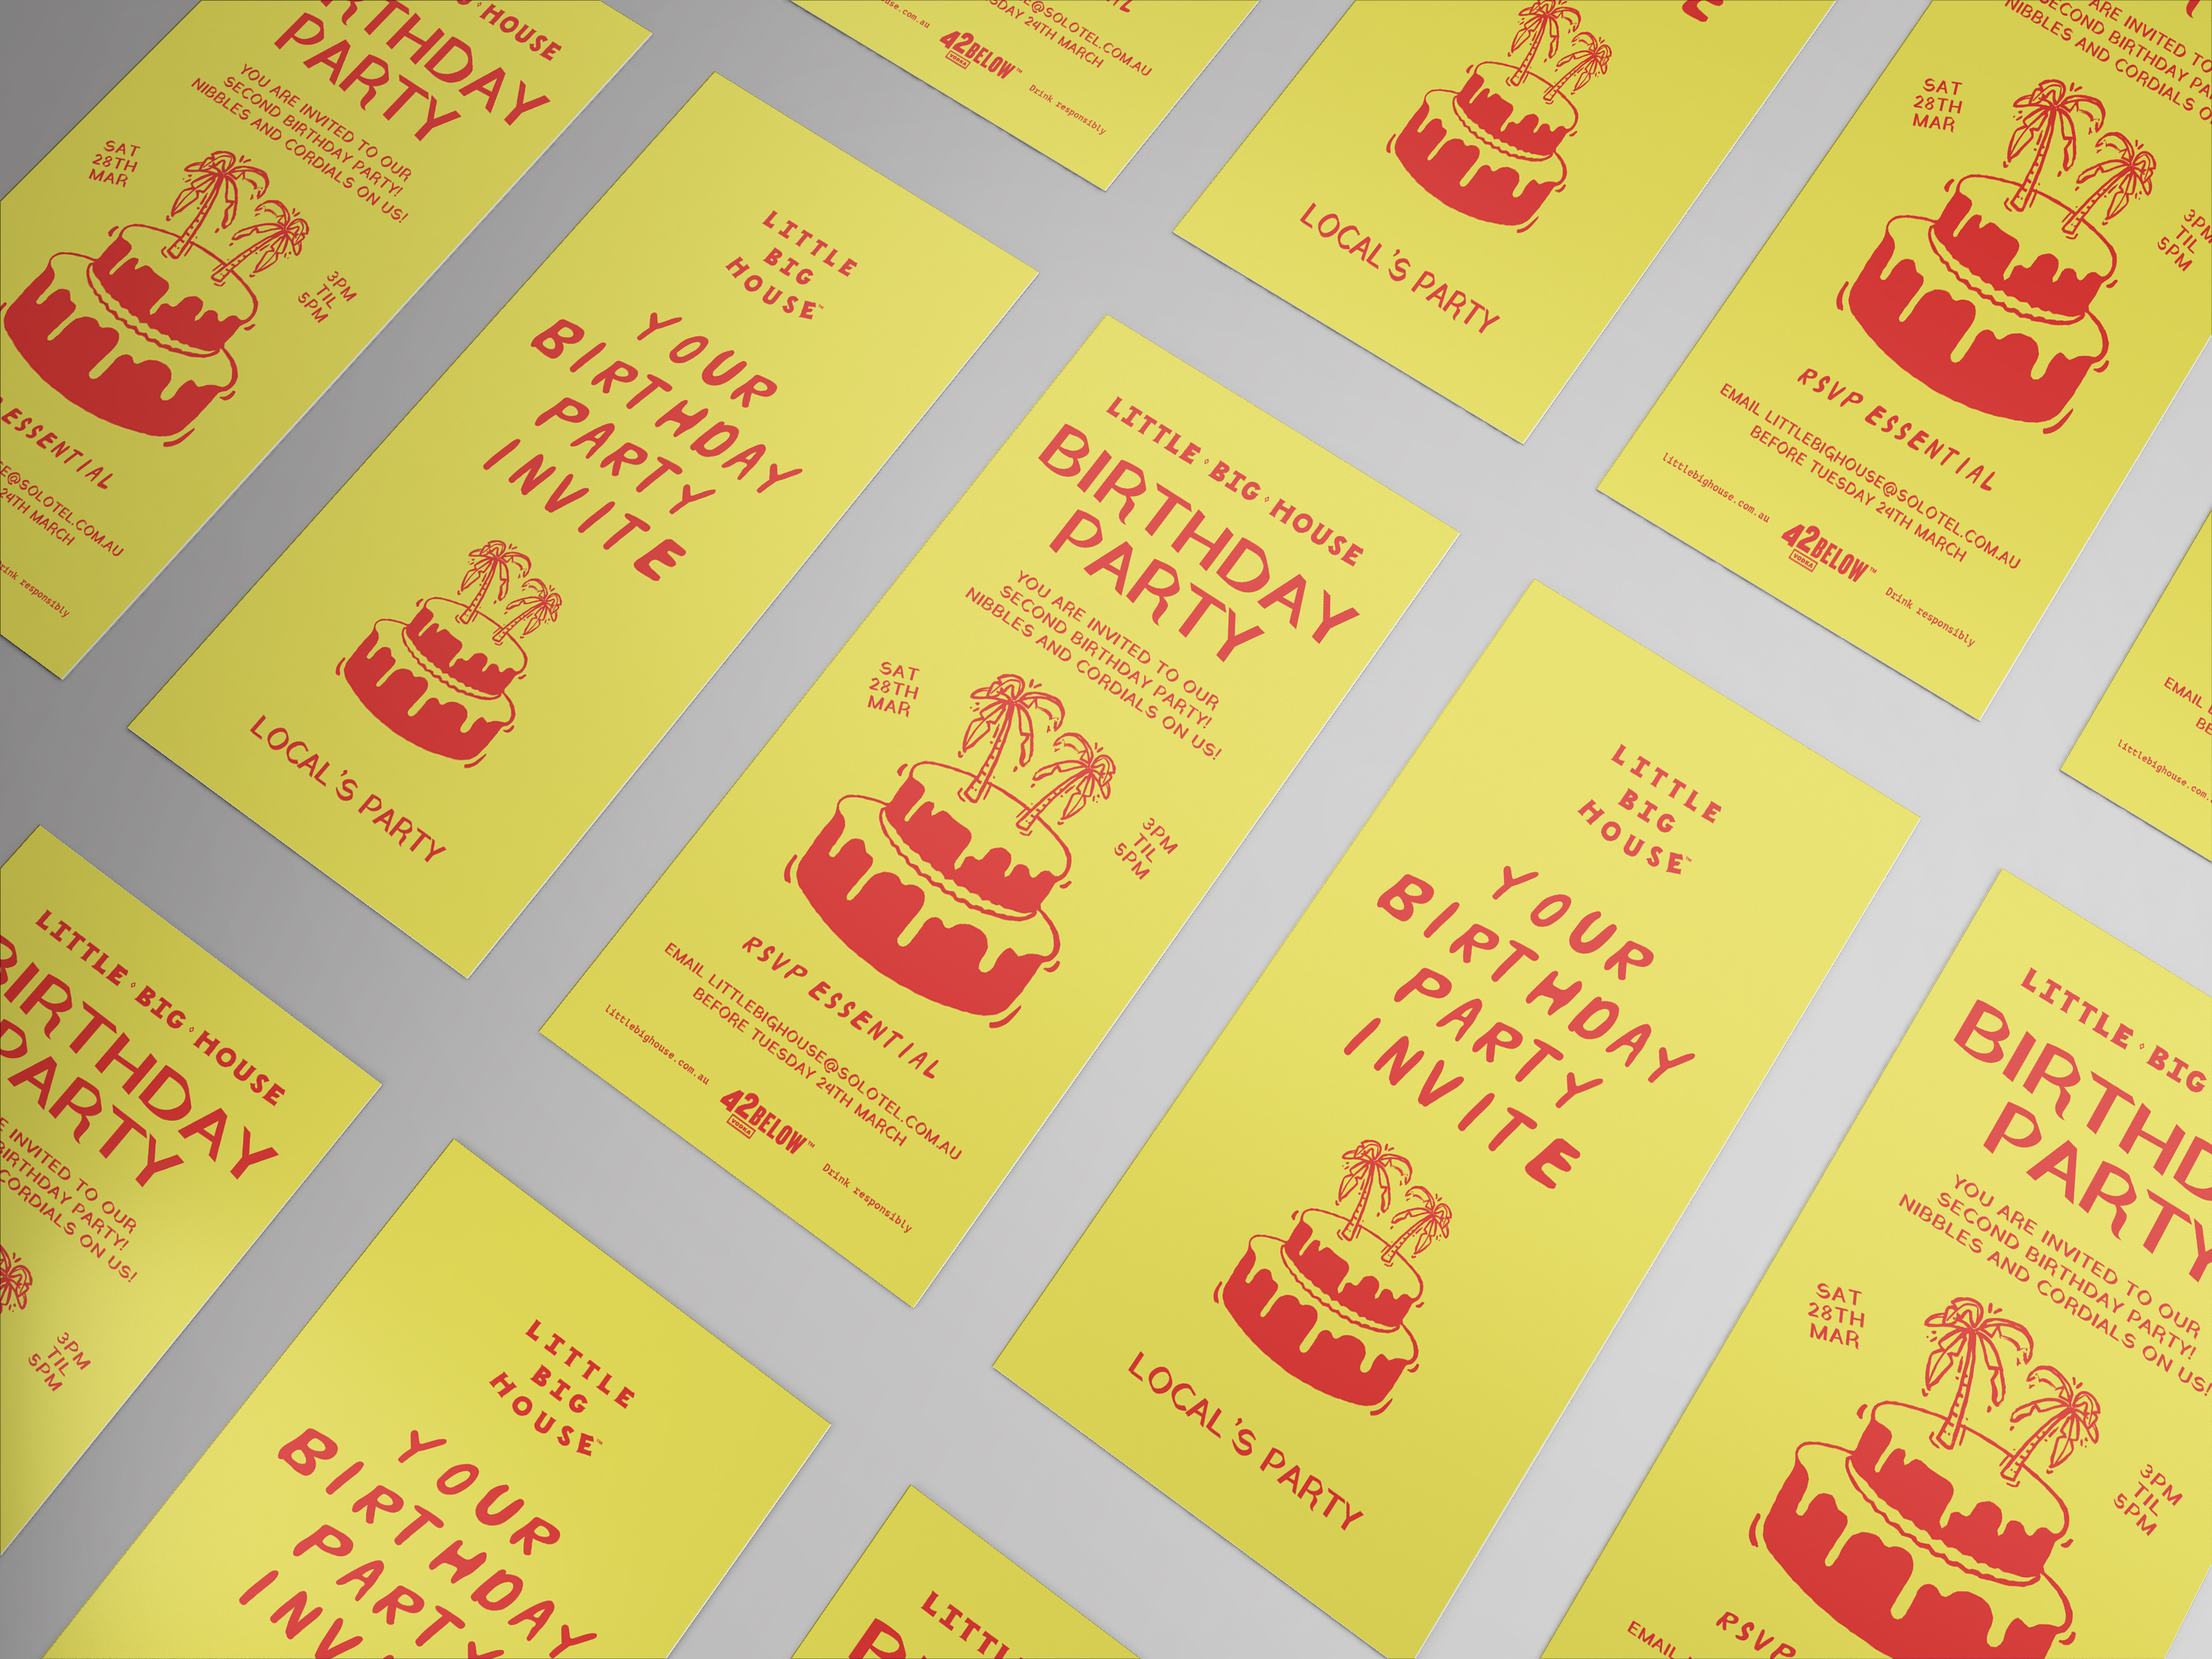 invitation design for a locals only birthday party event at little big house